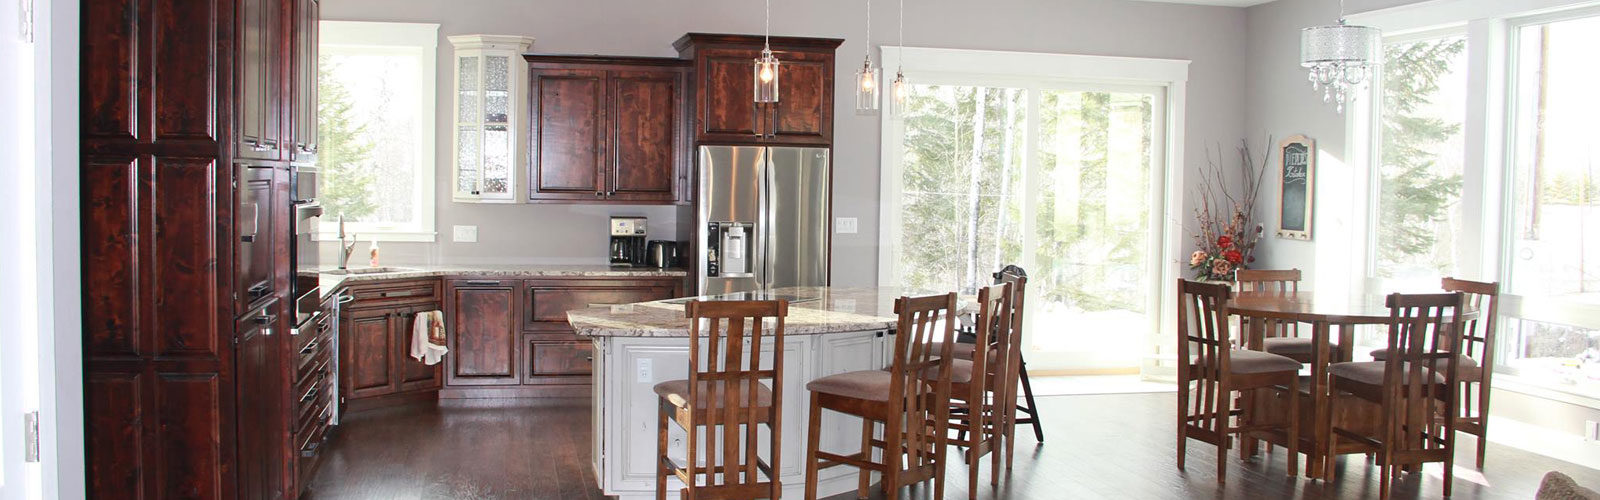 Gentil Great Kitchens Made Easy